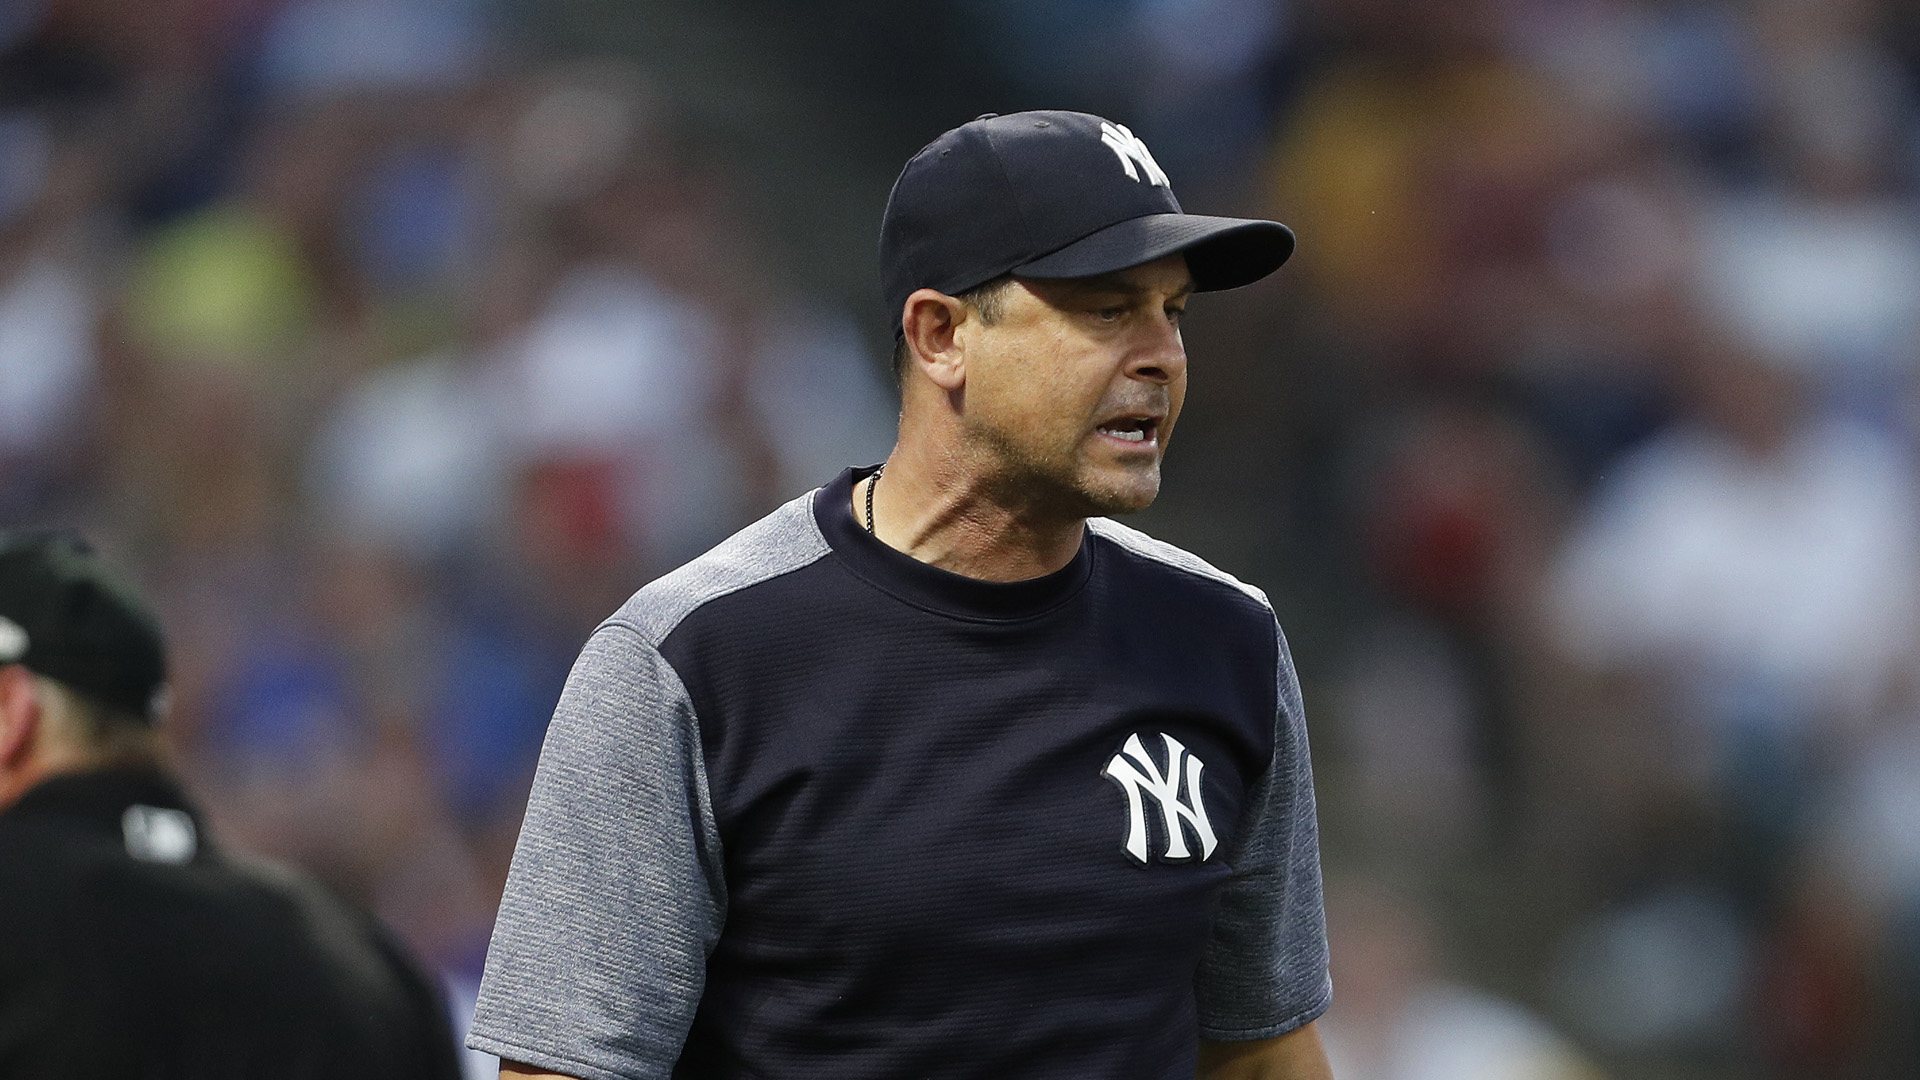 WATCH: Aaron Boone gets ejected, squats like catcher to show umpire strike zone